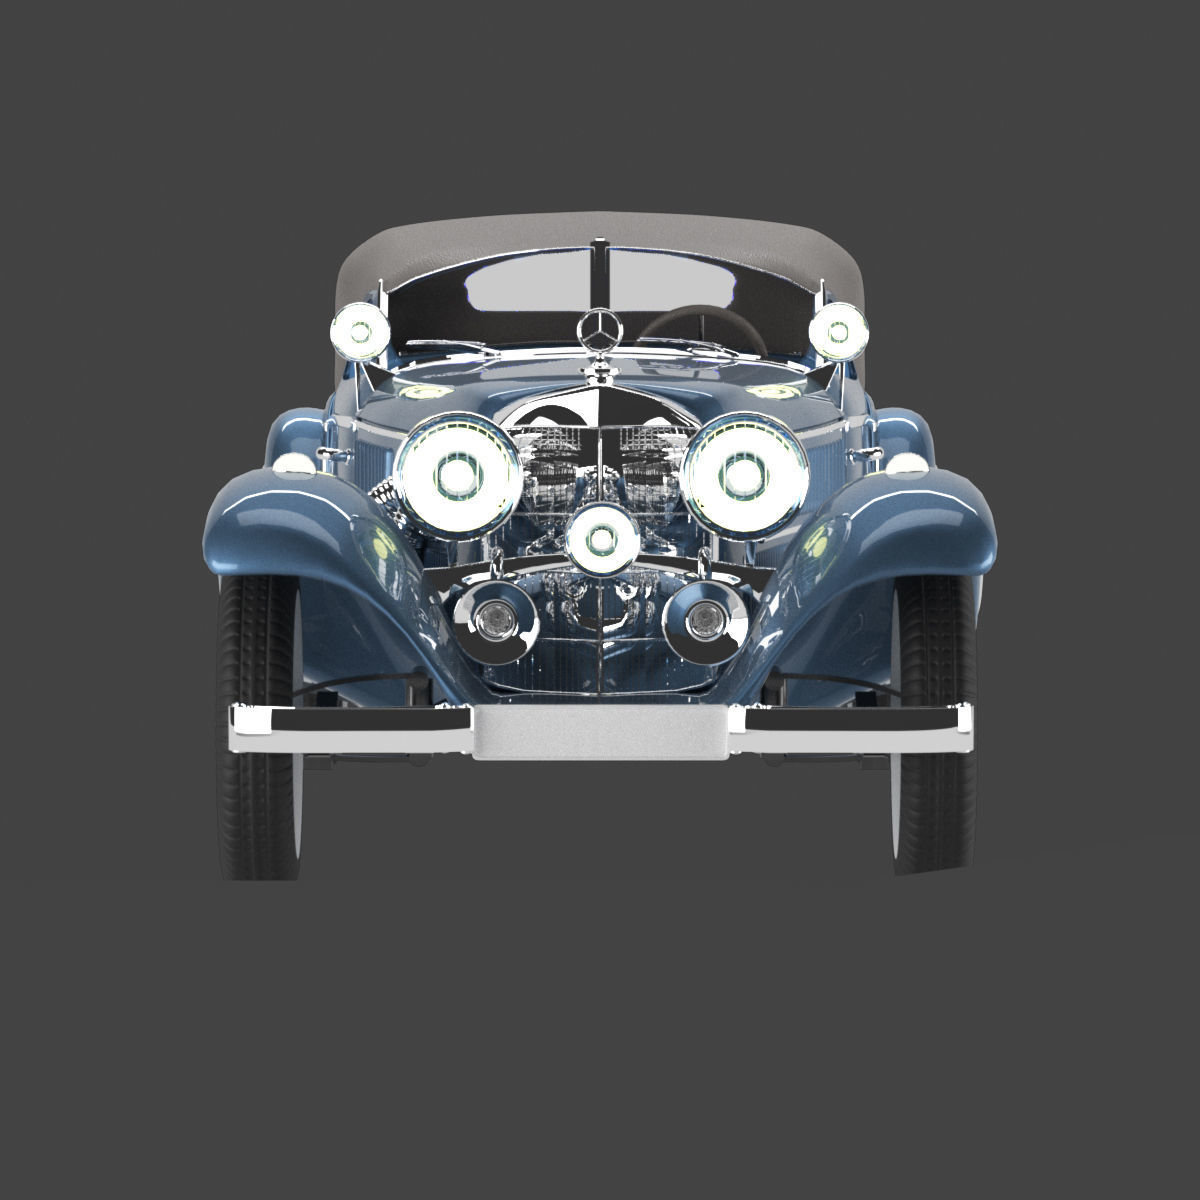 Mersedes 1938 540k blueprint V 01 with closed top